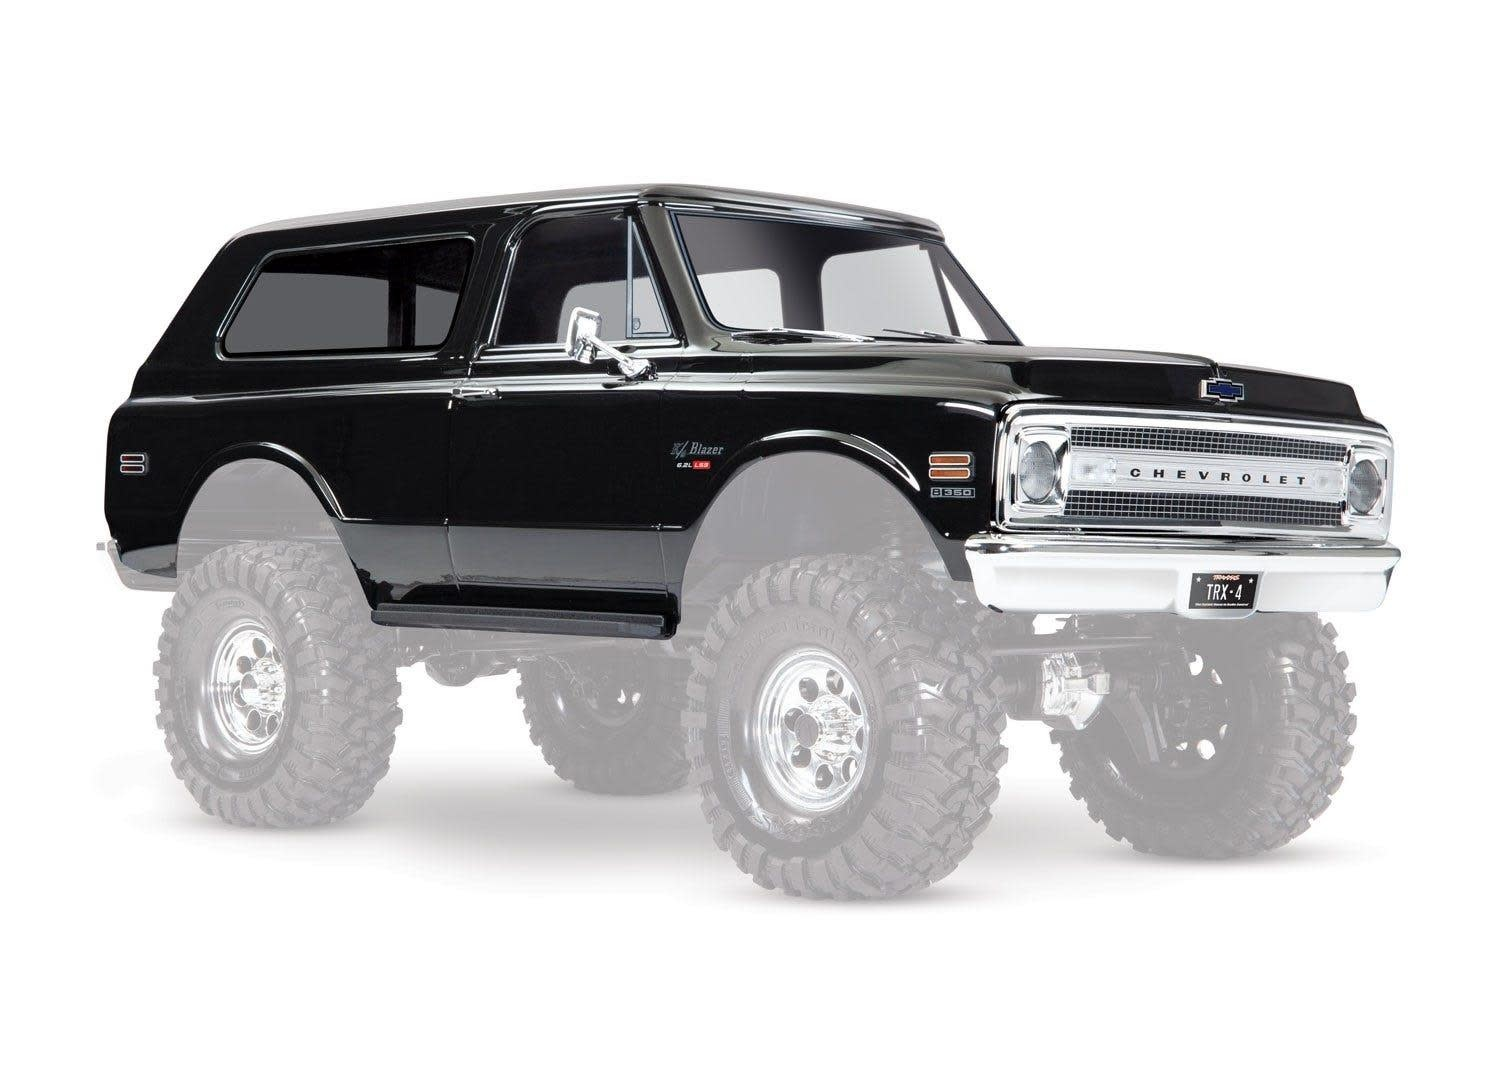 Body, Chevrolet Blazer (1969), complete (black) (includes grill, side mirrors, door handles, windshield wipers, front & rear bumpers, decals)-1